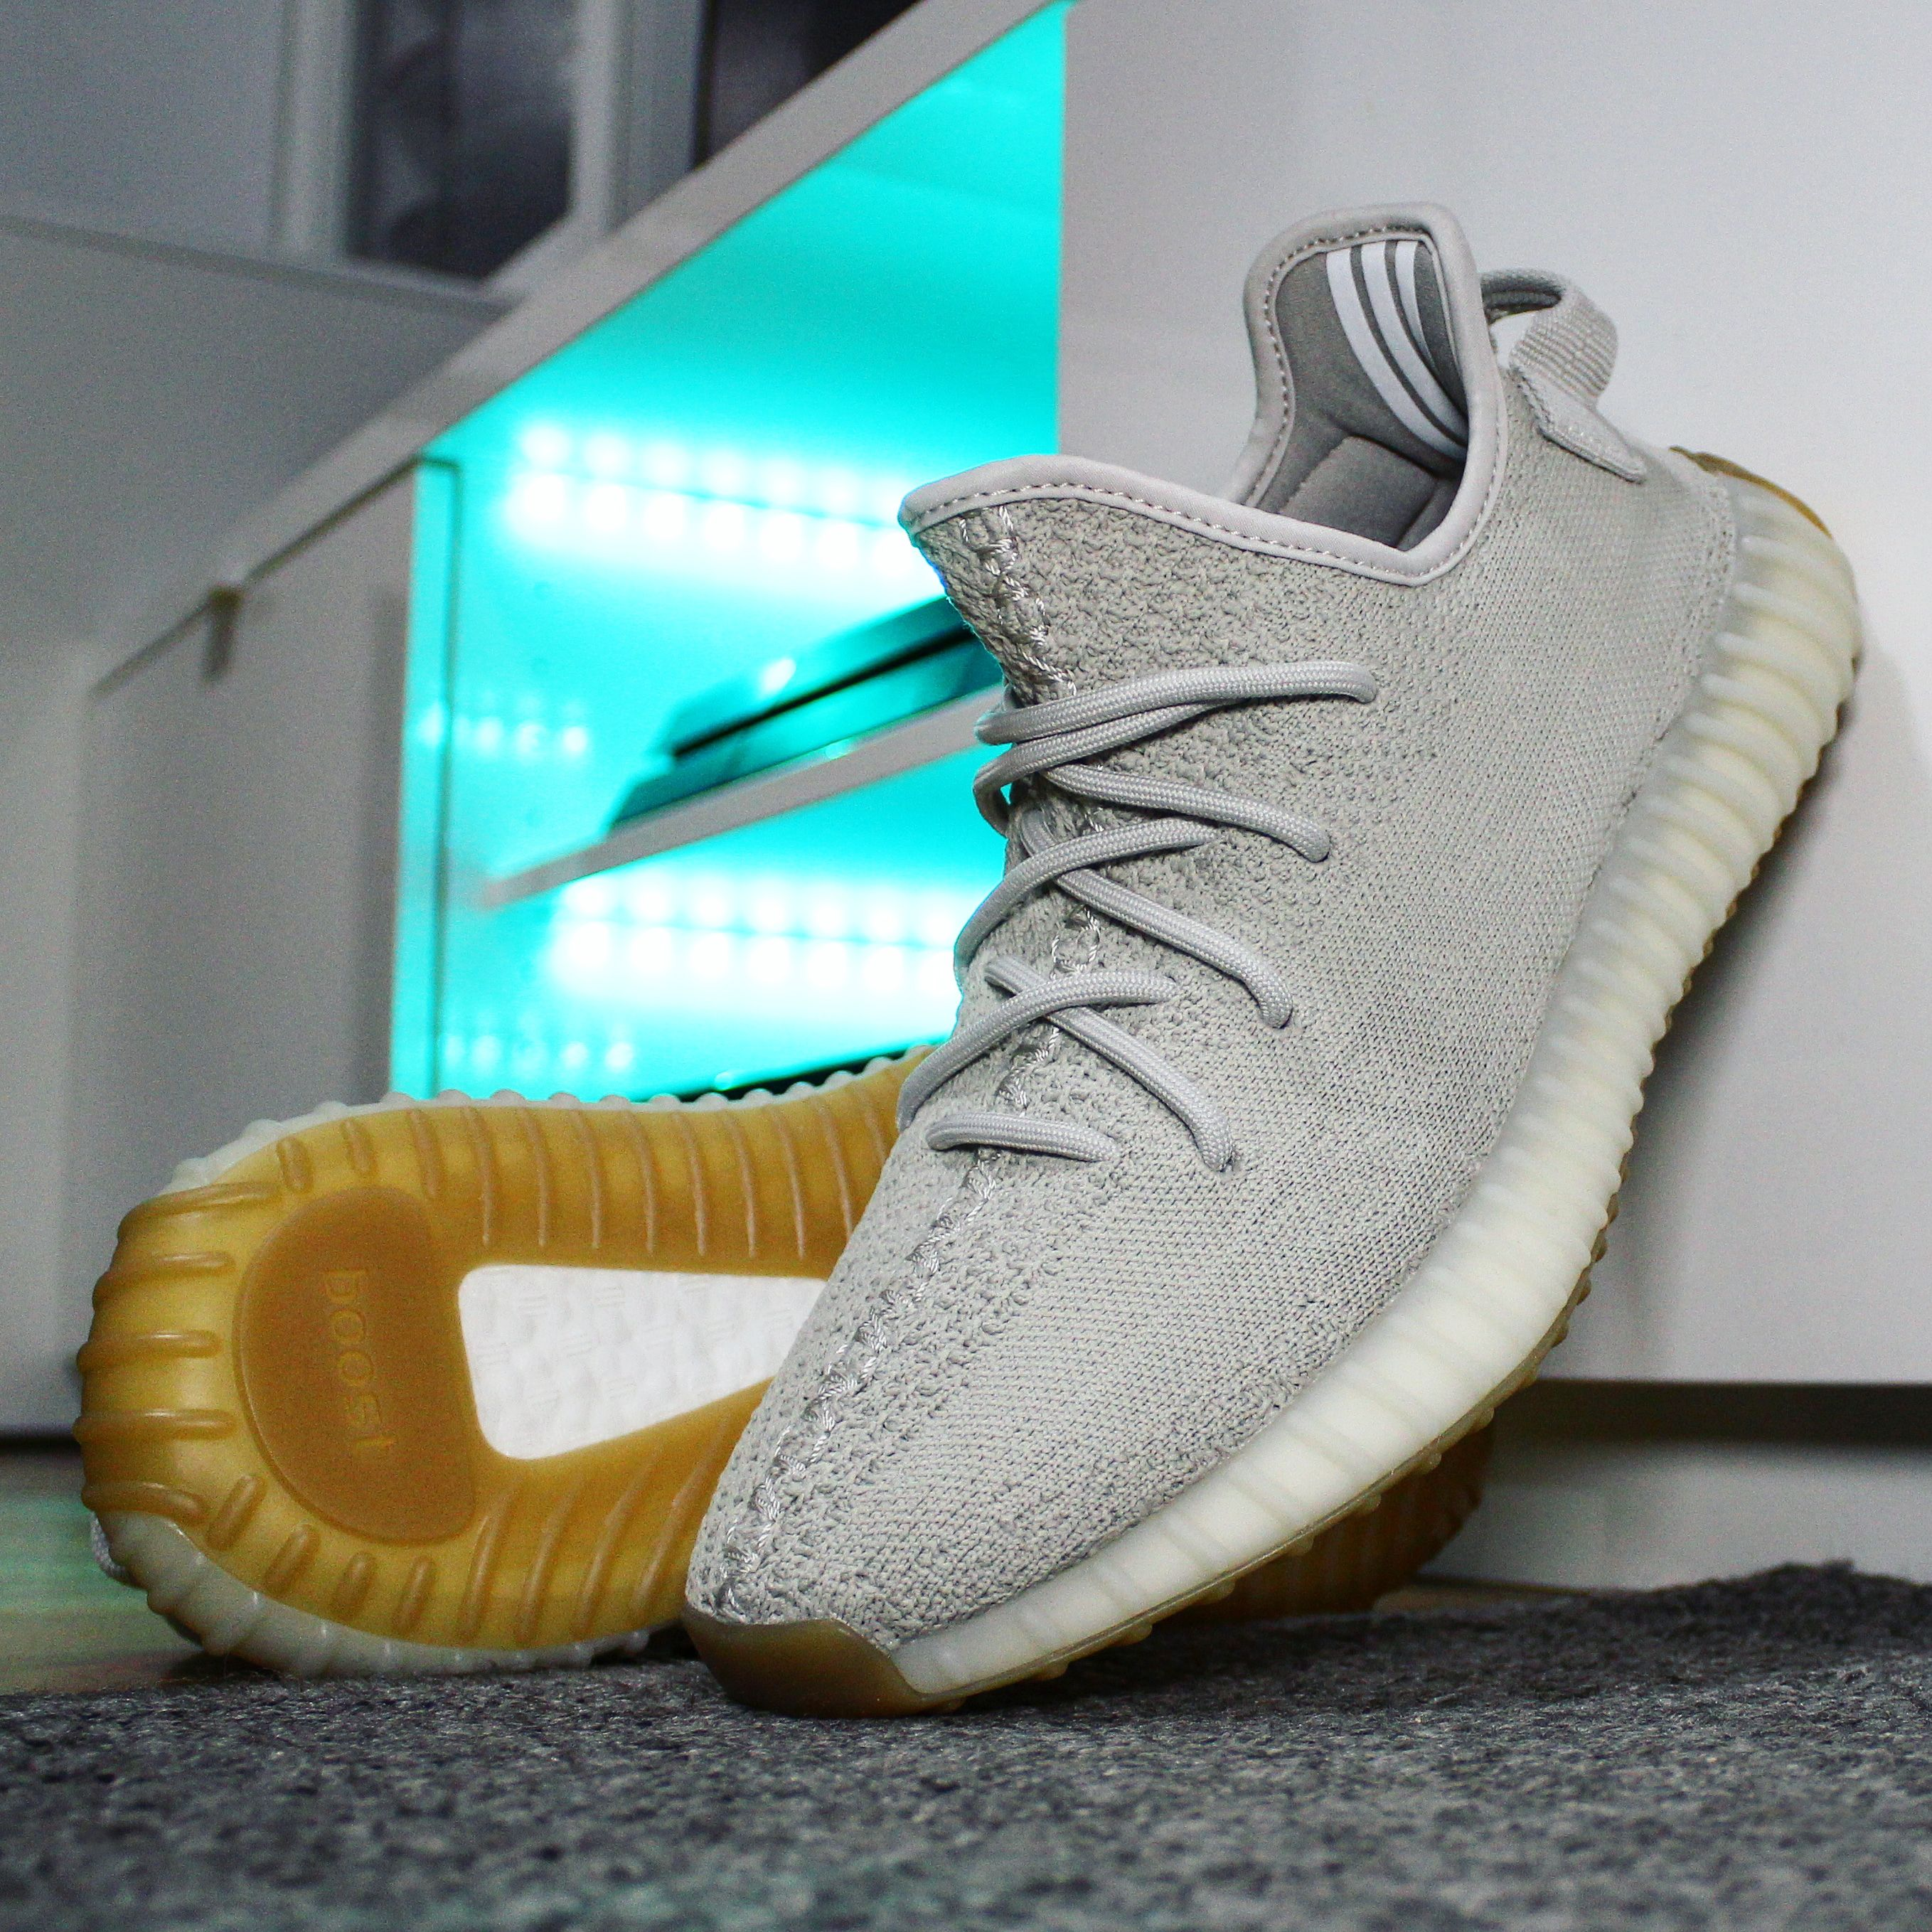 d94224f7daf4 Tag a friend who will cop Go check out my adidas Yeezy Boost 350 V2   Sesame  on feet